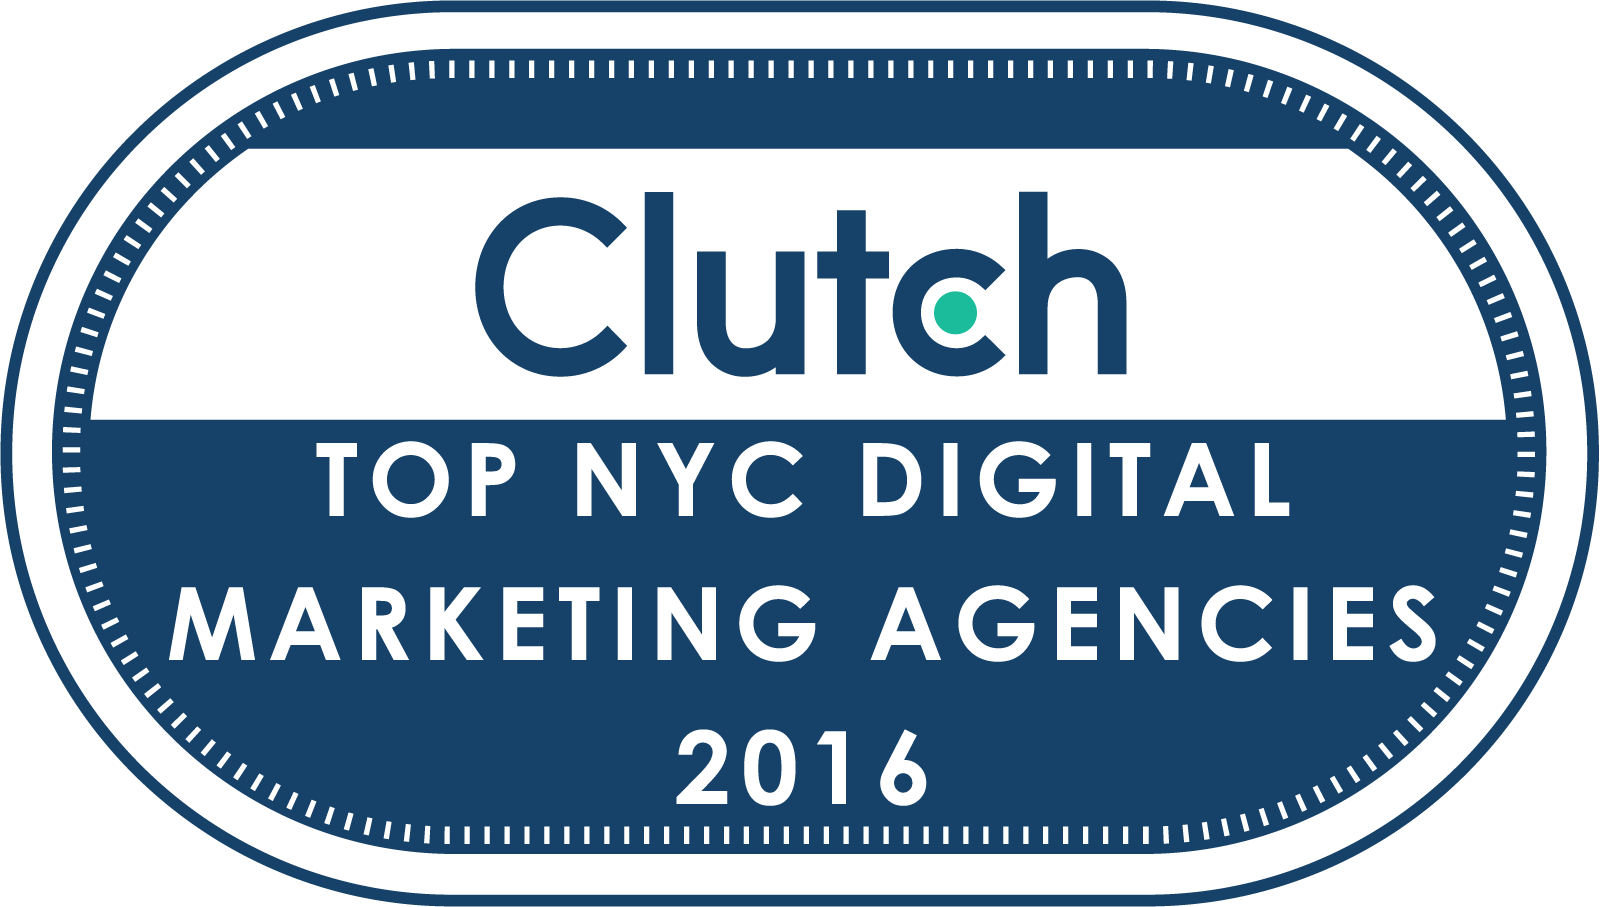 digital_marketing_agencies_nyc_2016_large